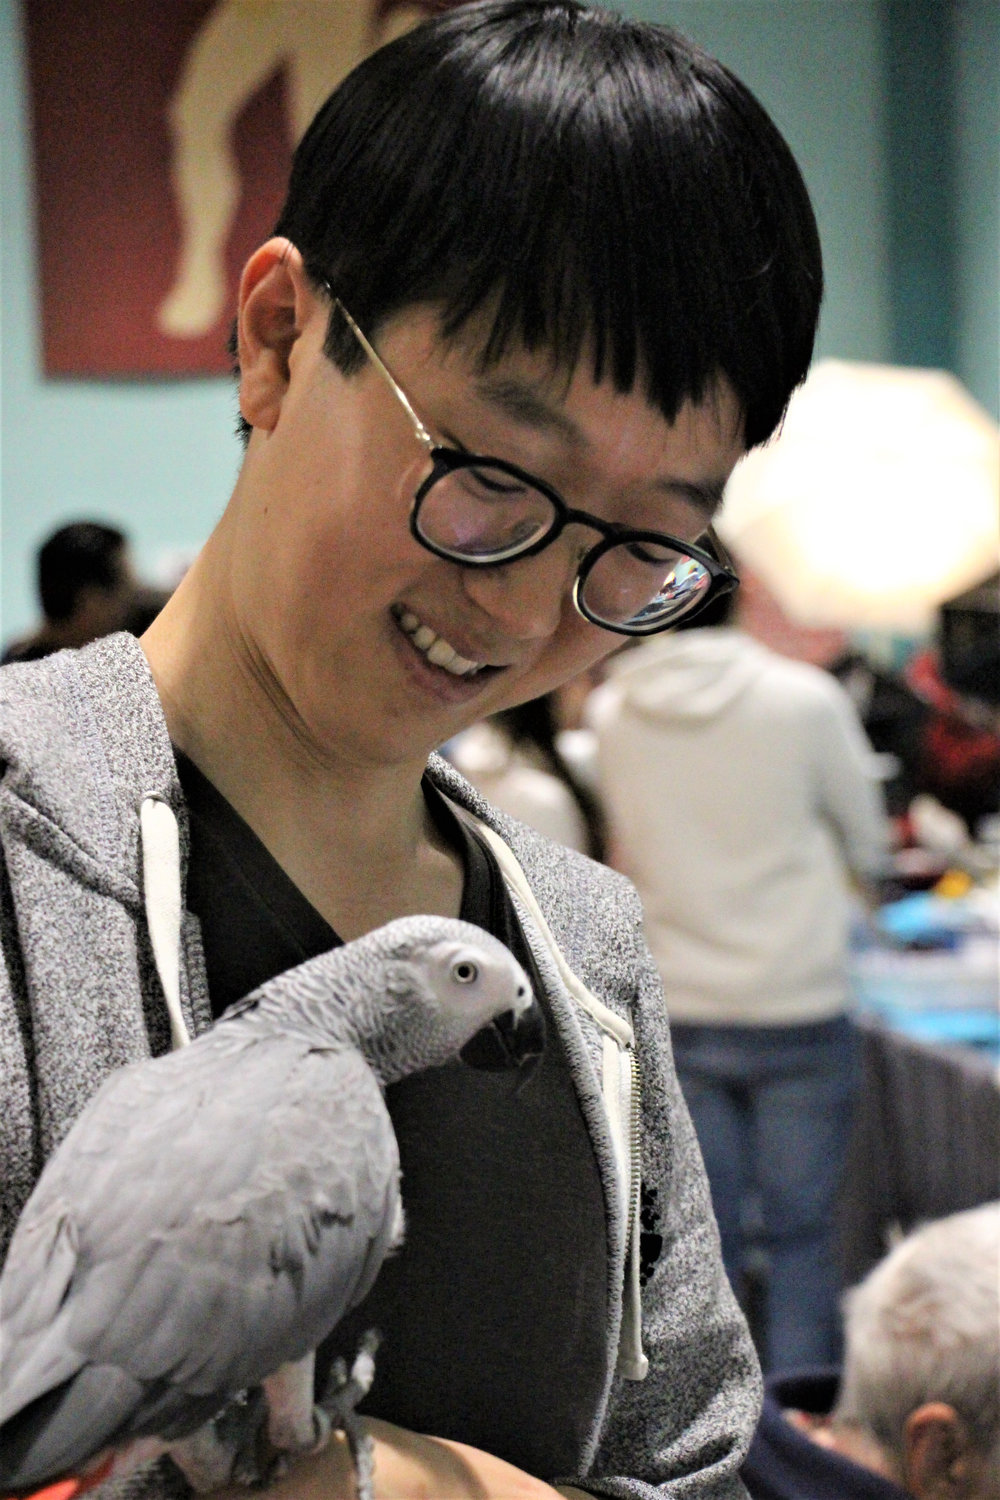 Dennis Wang was thinking about adding a new member to his family at the Long Island Parrot Society's annual Parrot Expo last Saturday.